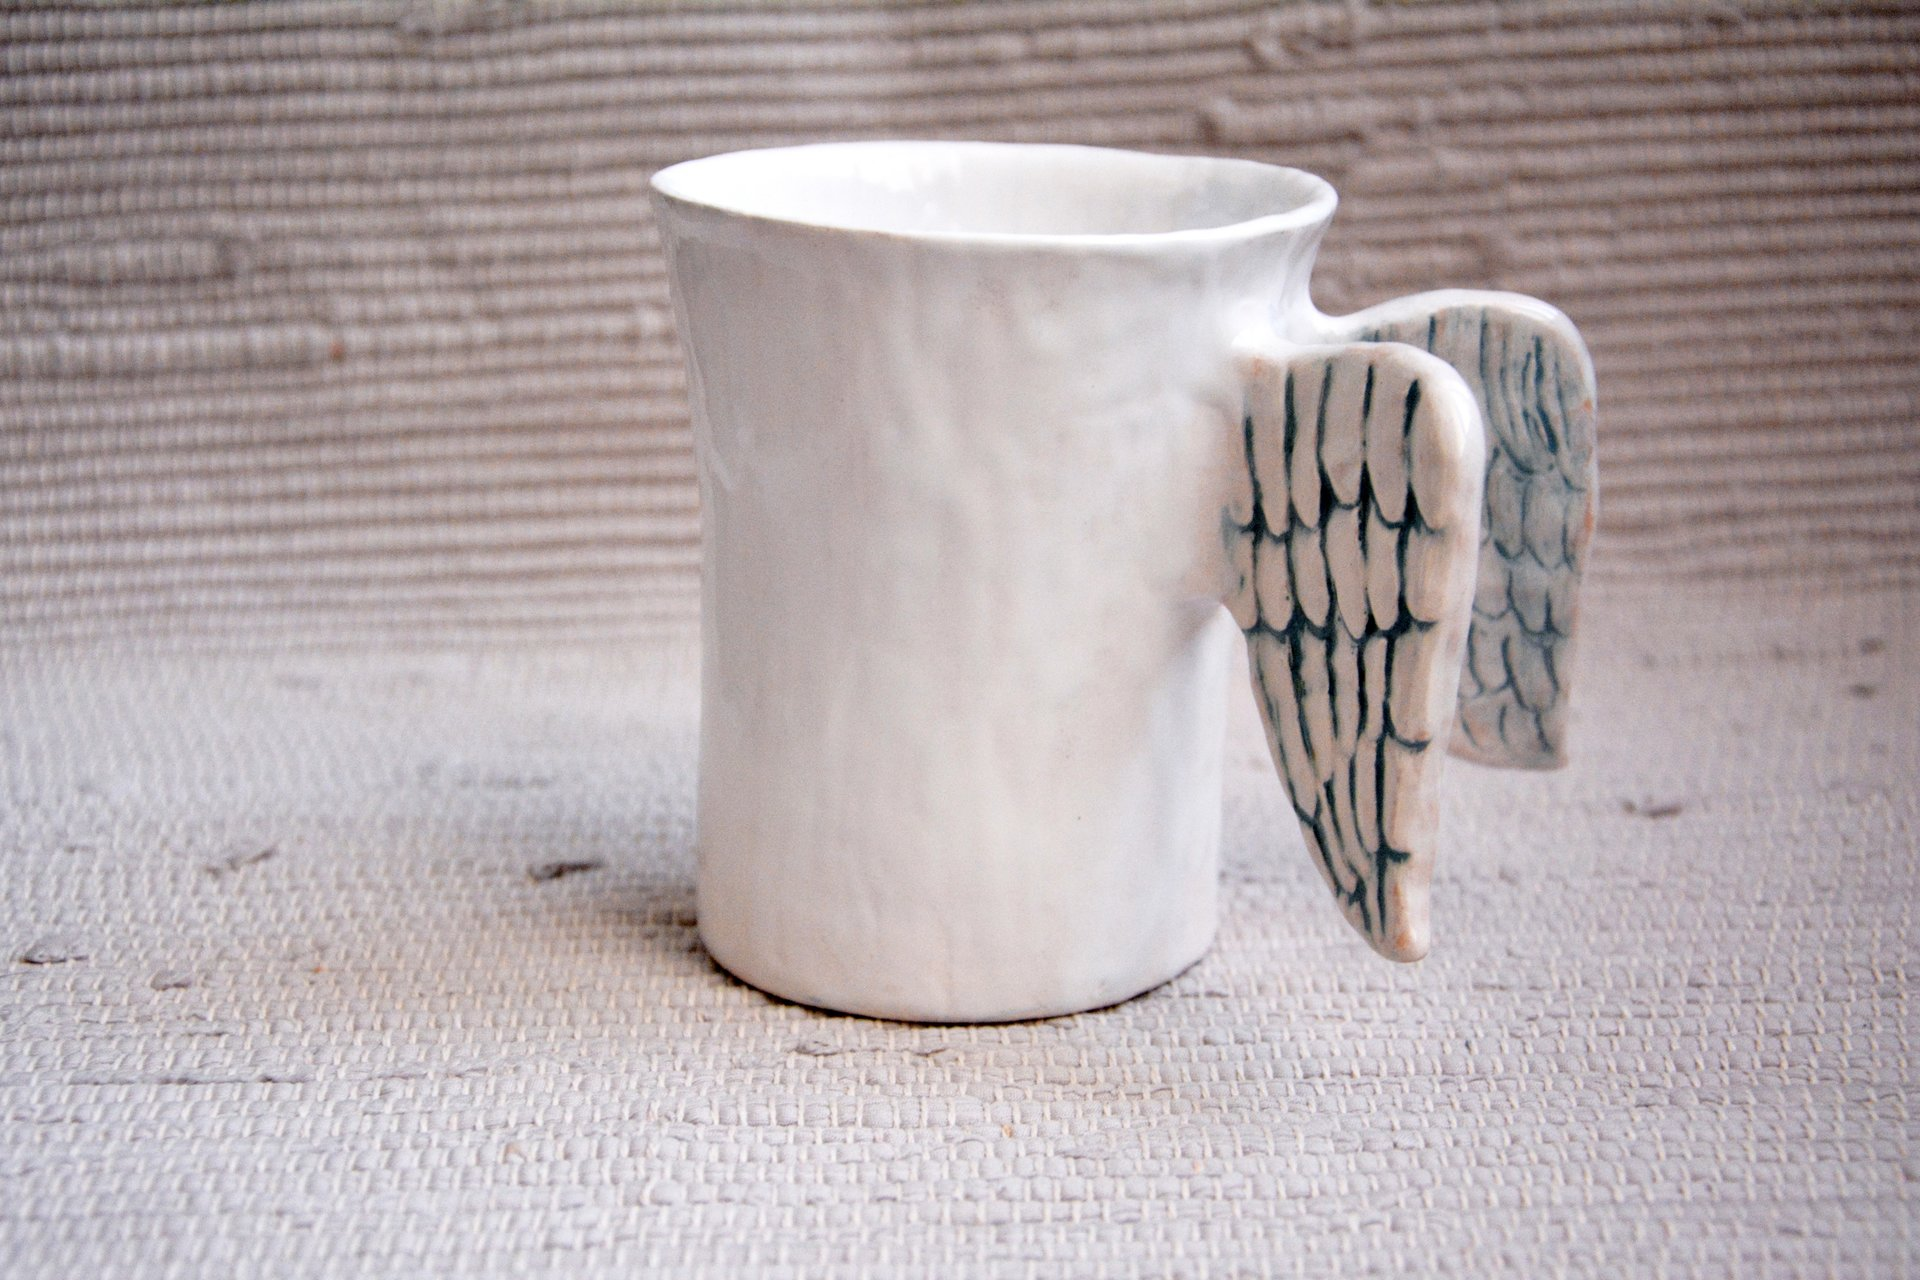 White with Wings - Cups, glasses, mugs, height - 11 cm, diameter on the bottom - 7 cm, on the top - 8.5 cm, photo 1 of 1.